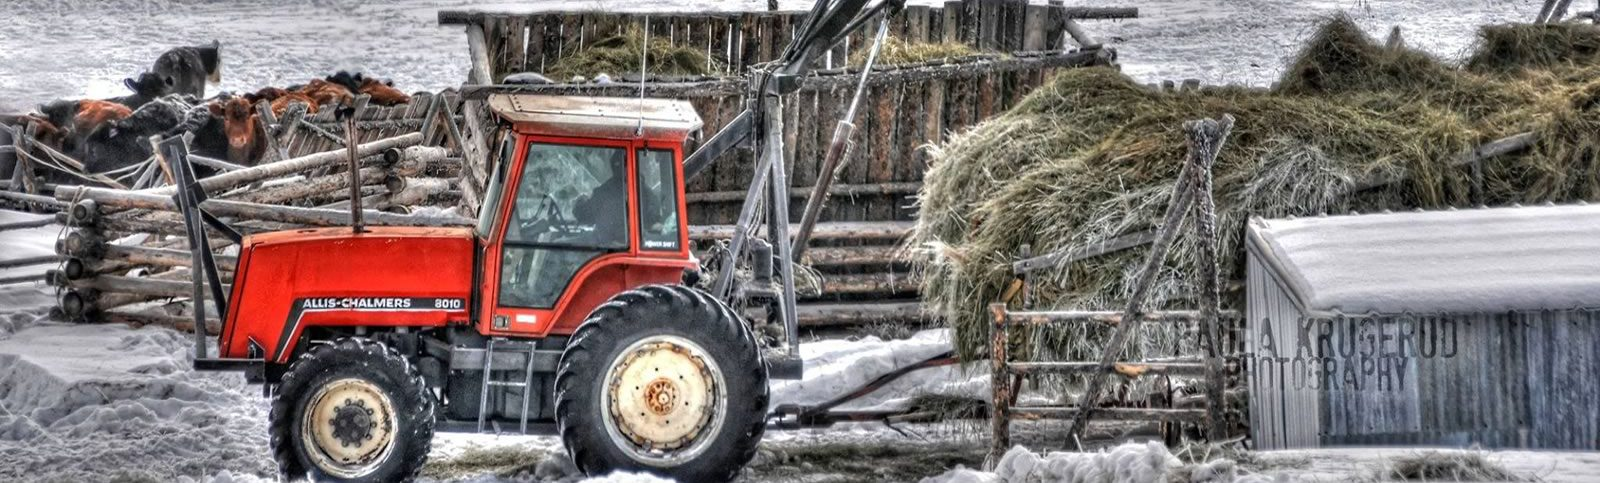 Photo of a tractor pulling a trailer load of hay in the winter.